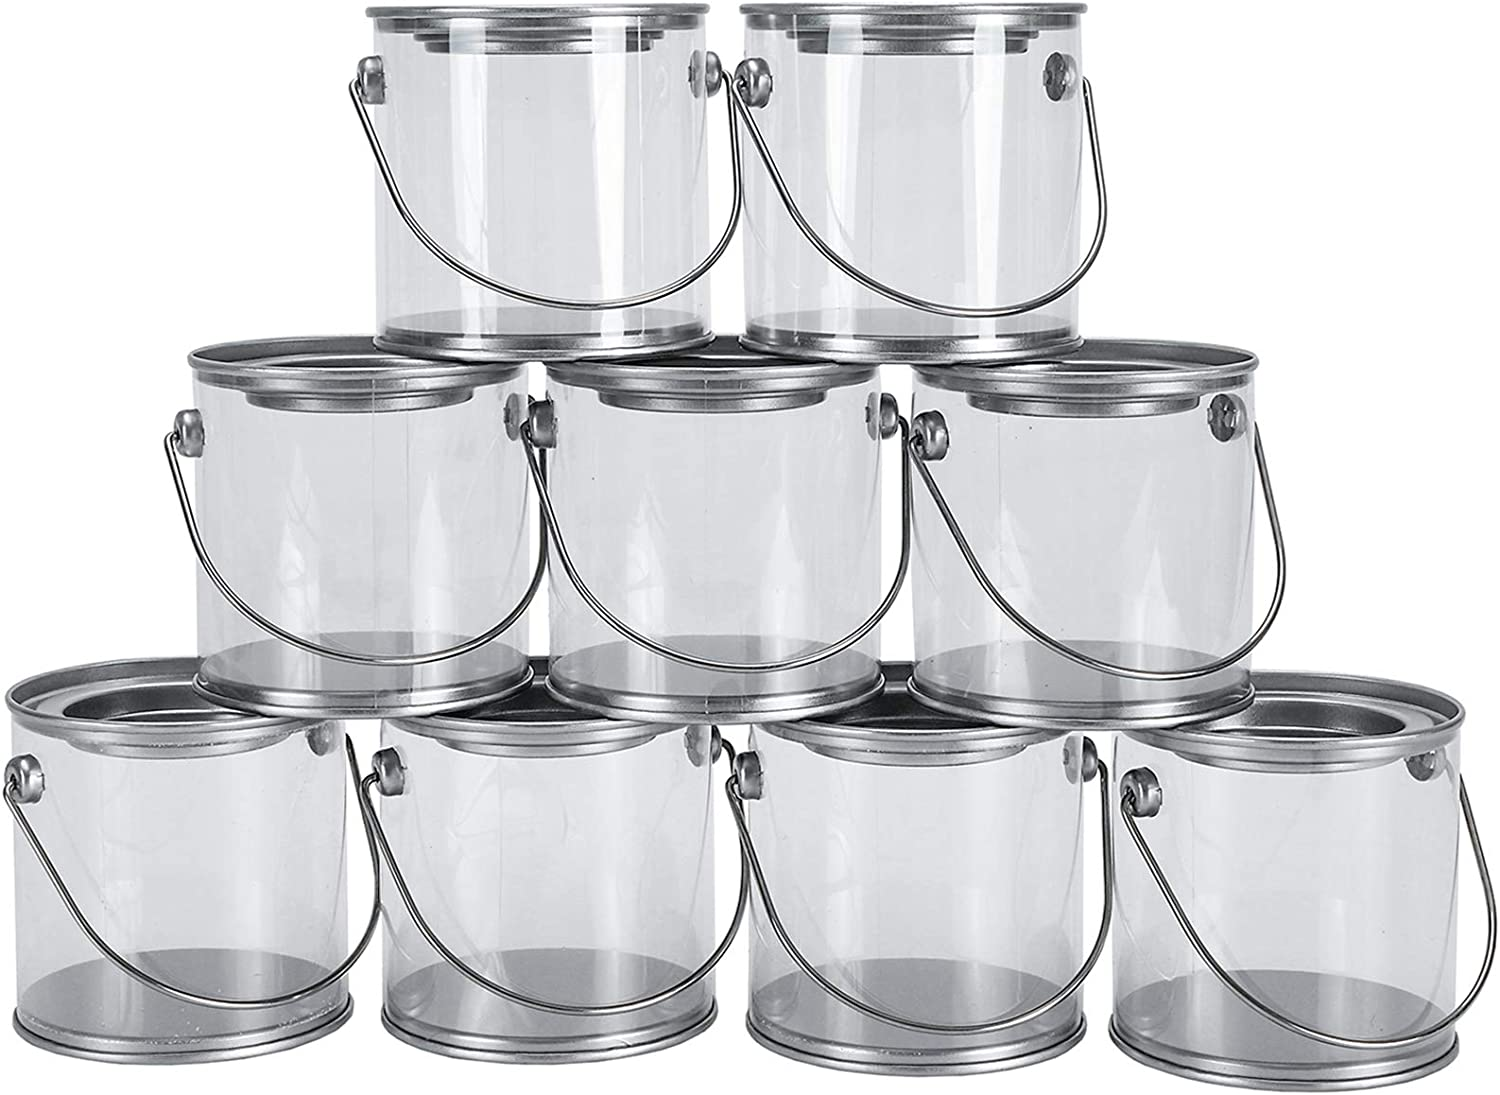 Hedume 9 Pack Mini Clear Plastic Paint Cans, 3-Inch Tall Crafts and Party Favor Cans, Paint Can Containers with Metal Lids Great for Party Decor and DIY